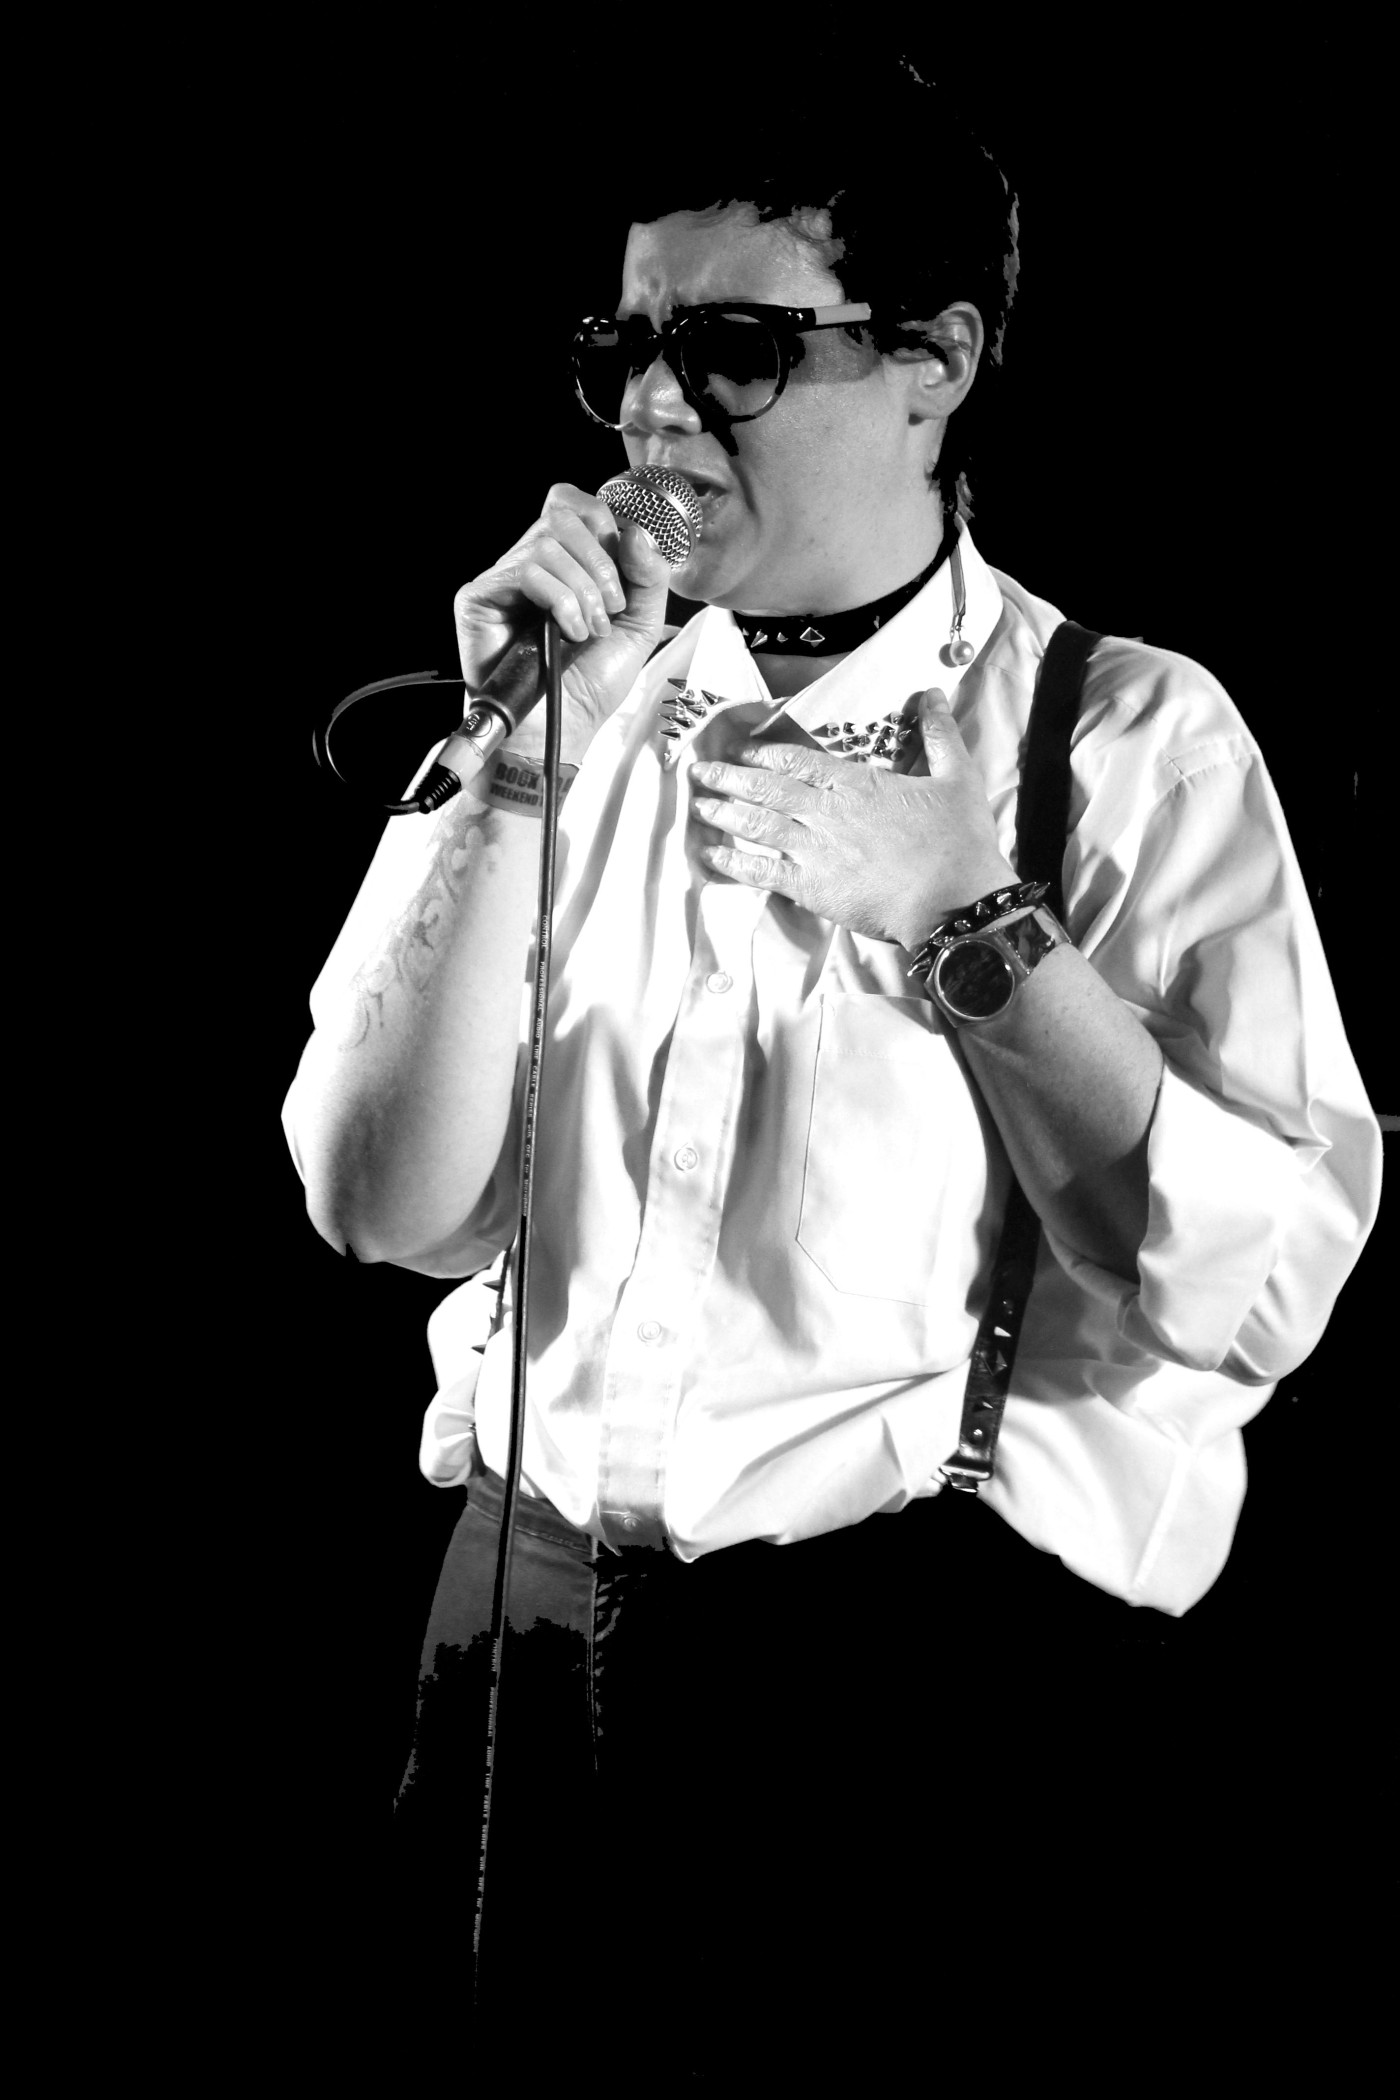 [Greyscale image] Meg Stewart, singing into a floor mic held in her right hand, with her left hand on her heart.